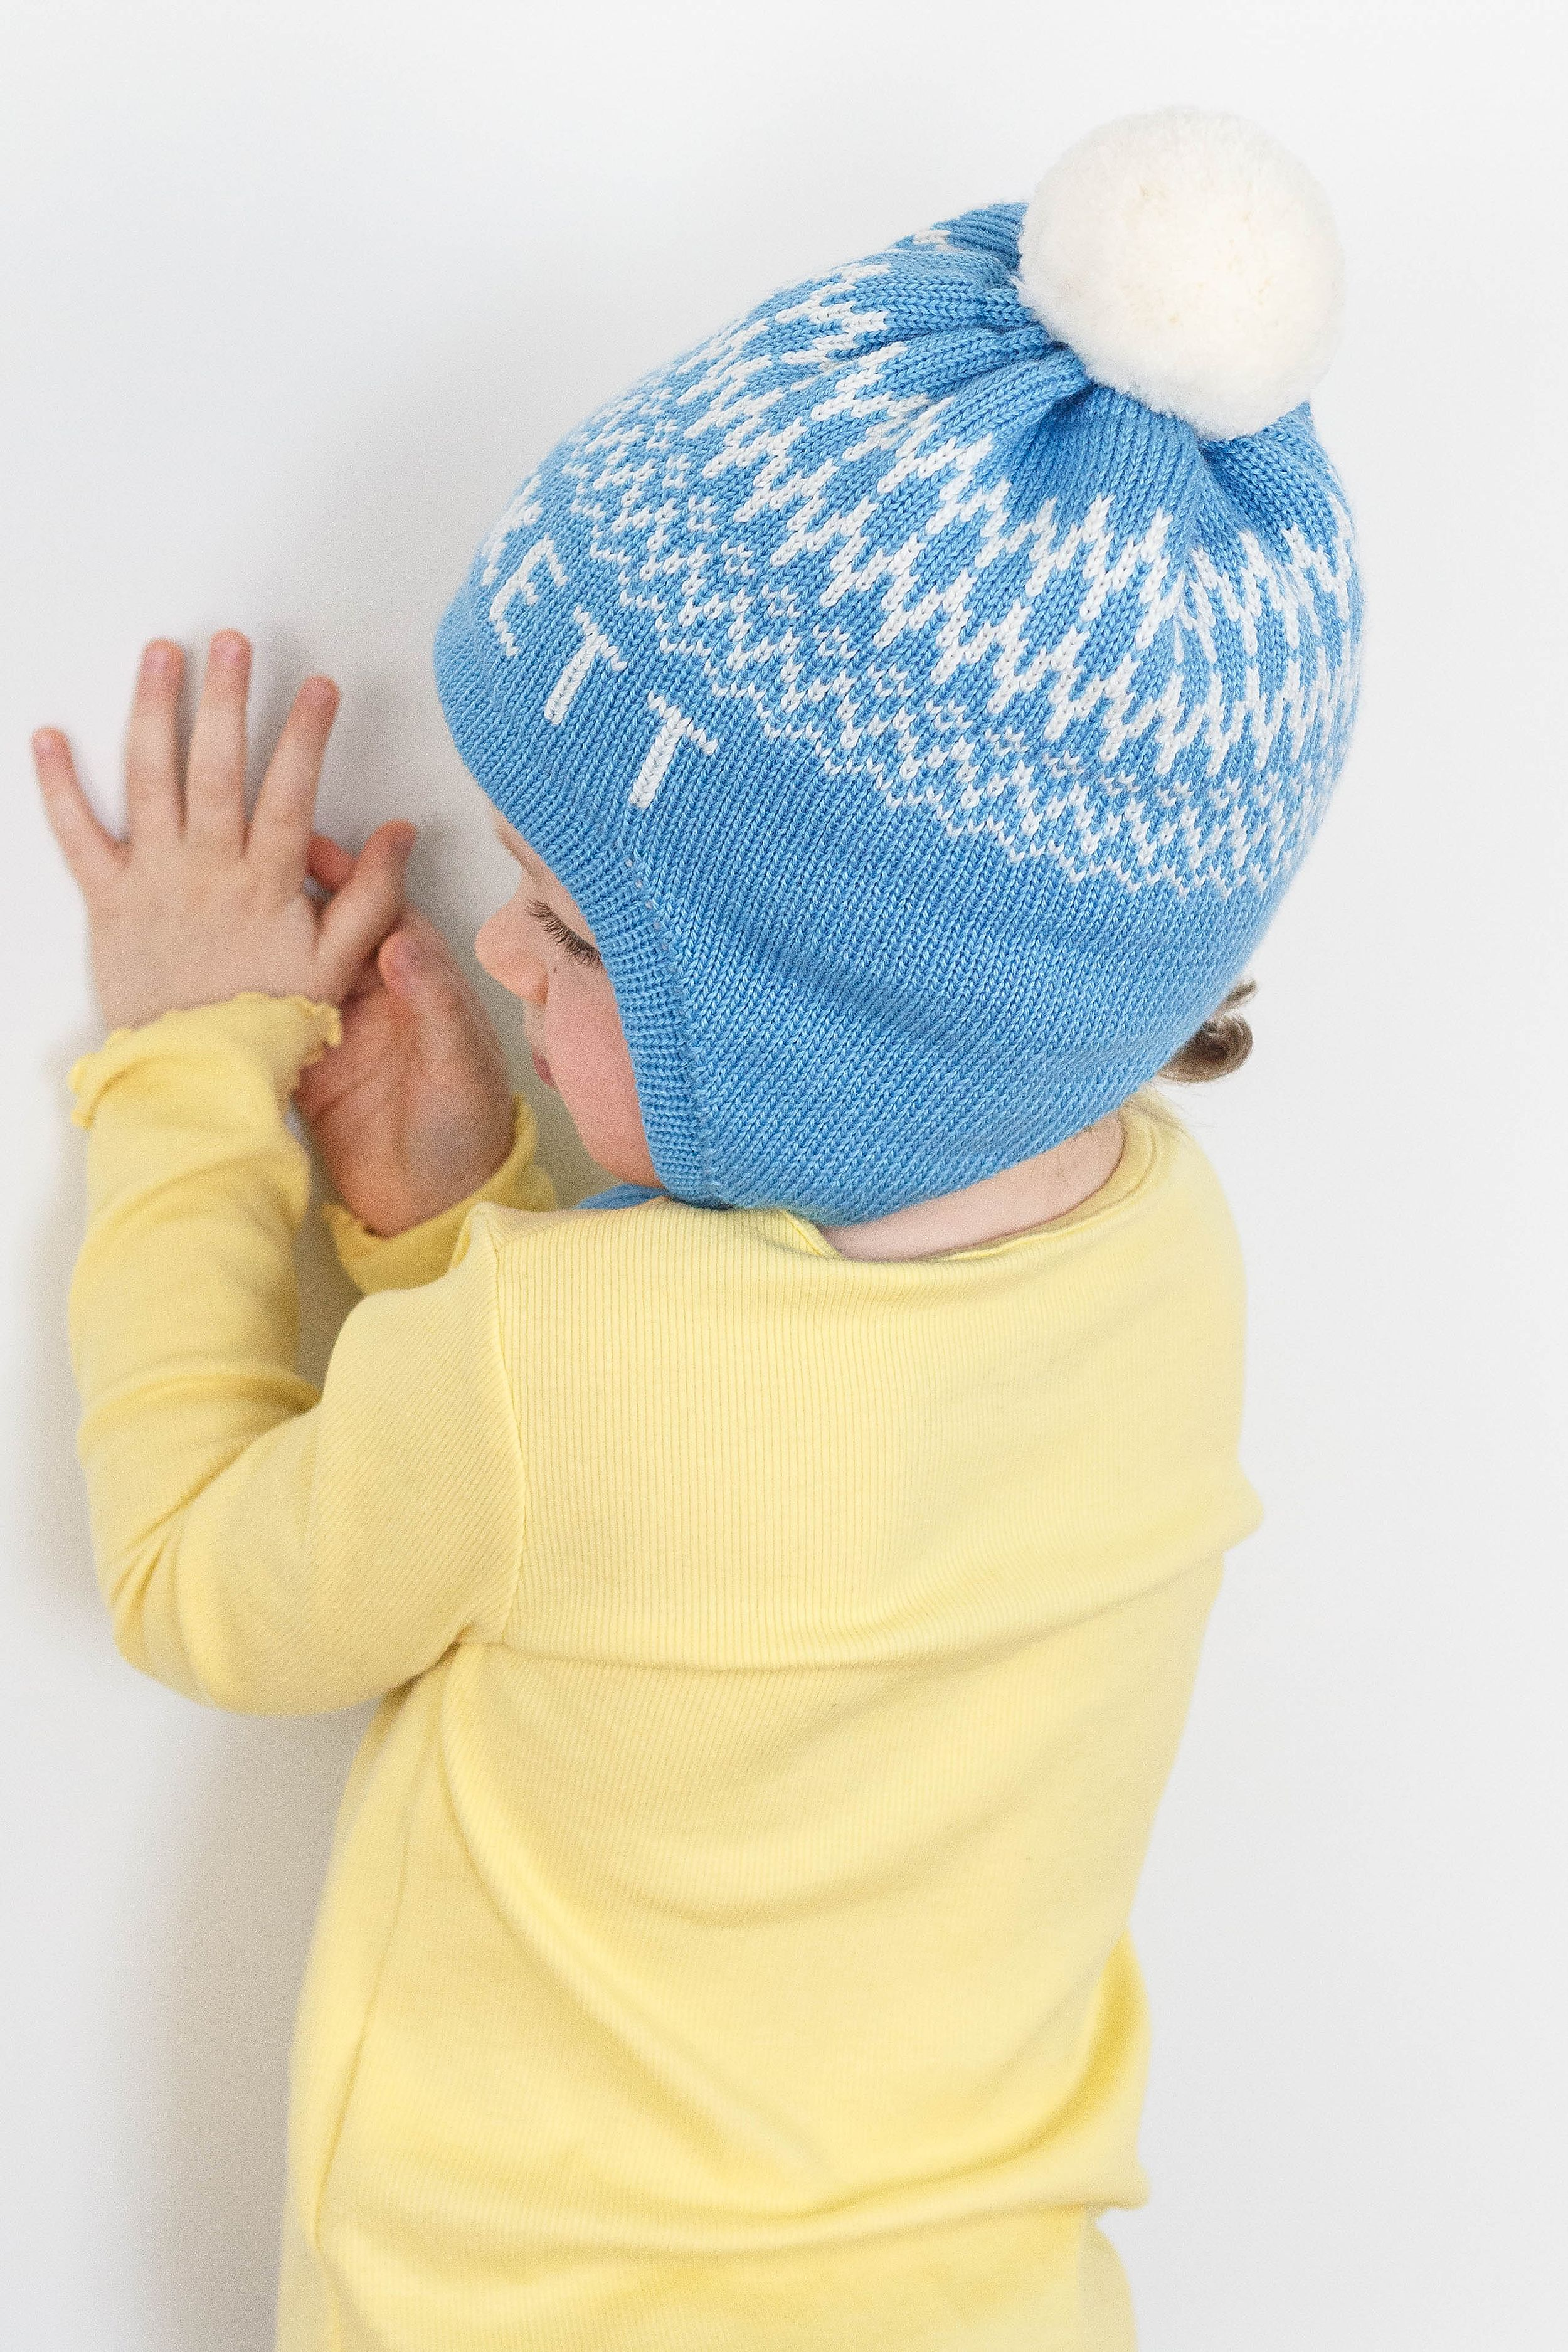 Personalized Ear Flap Beanie With Pom Pom For Boys And Girls Custom Toddler Kids Knit Winter Hat With Name Knitted Hats Kids Toddler Knit Hat Knitting For Kids